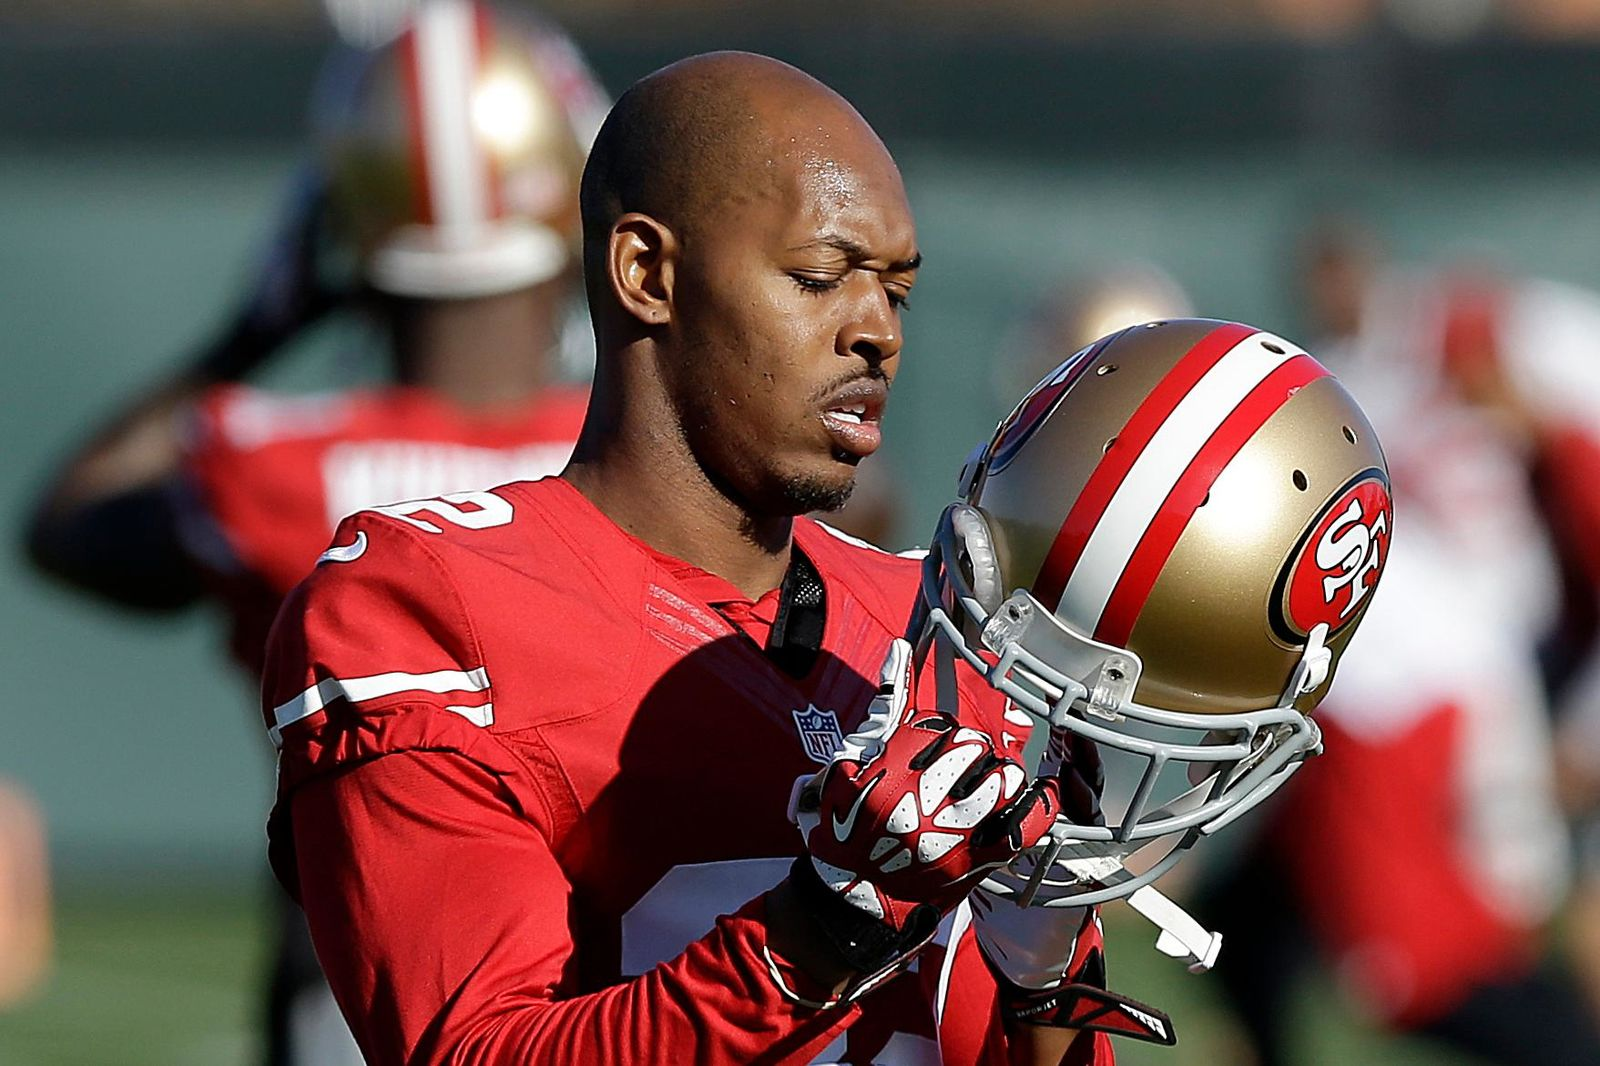 FILE - In this Jan. 15, 2014 file photo, San Francisco 49ers cornerback Carlos Rogers adjusts his helmet during practice at an NFL football training facility in Santa Clara, Calif. Ten former NFL players have been charged with defrauding the league's healthcare benefit program. They include five who played on the Washington Redskins, including Clinton Portis and Carlos Rogers.  (AP Photo/Jeff Chiu)